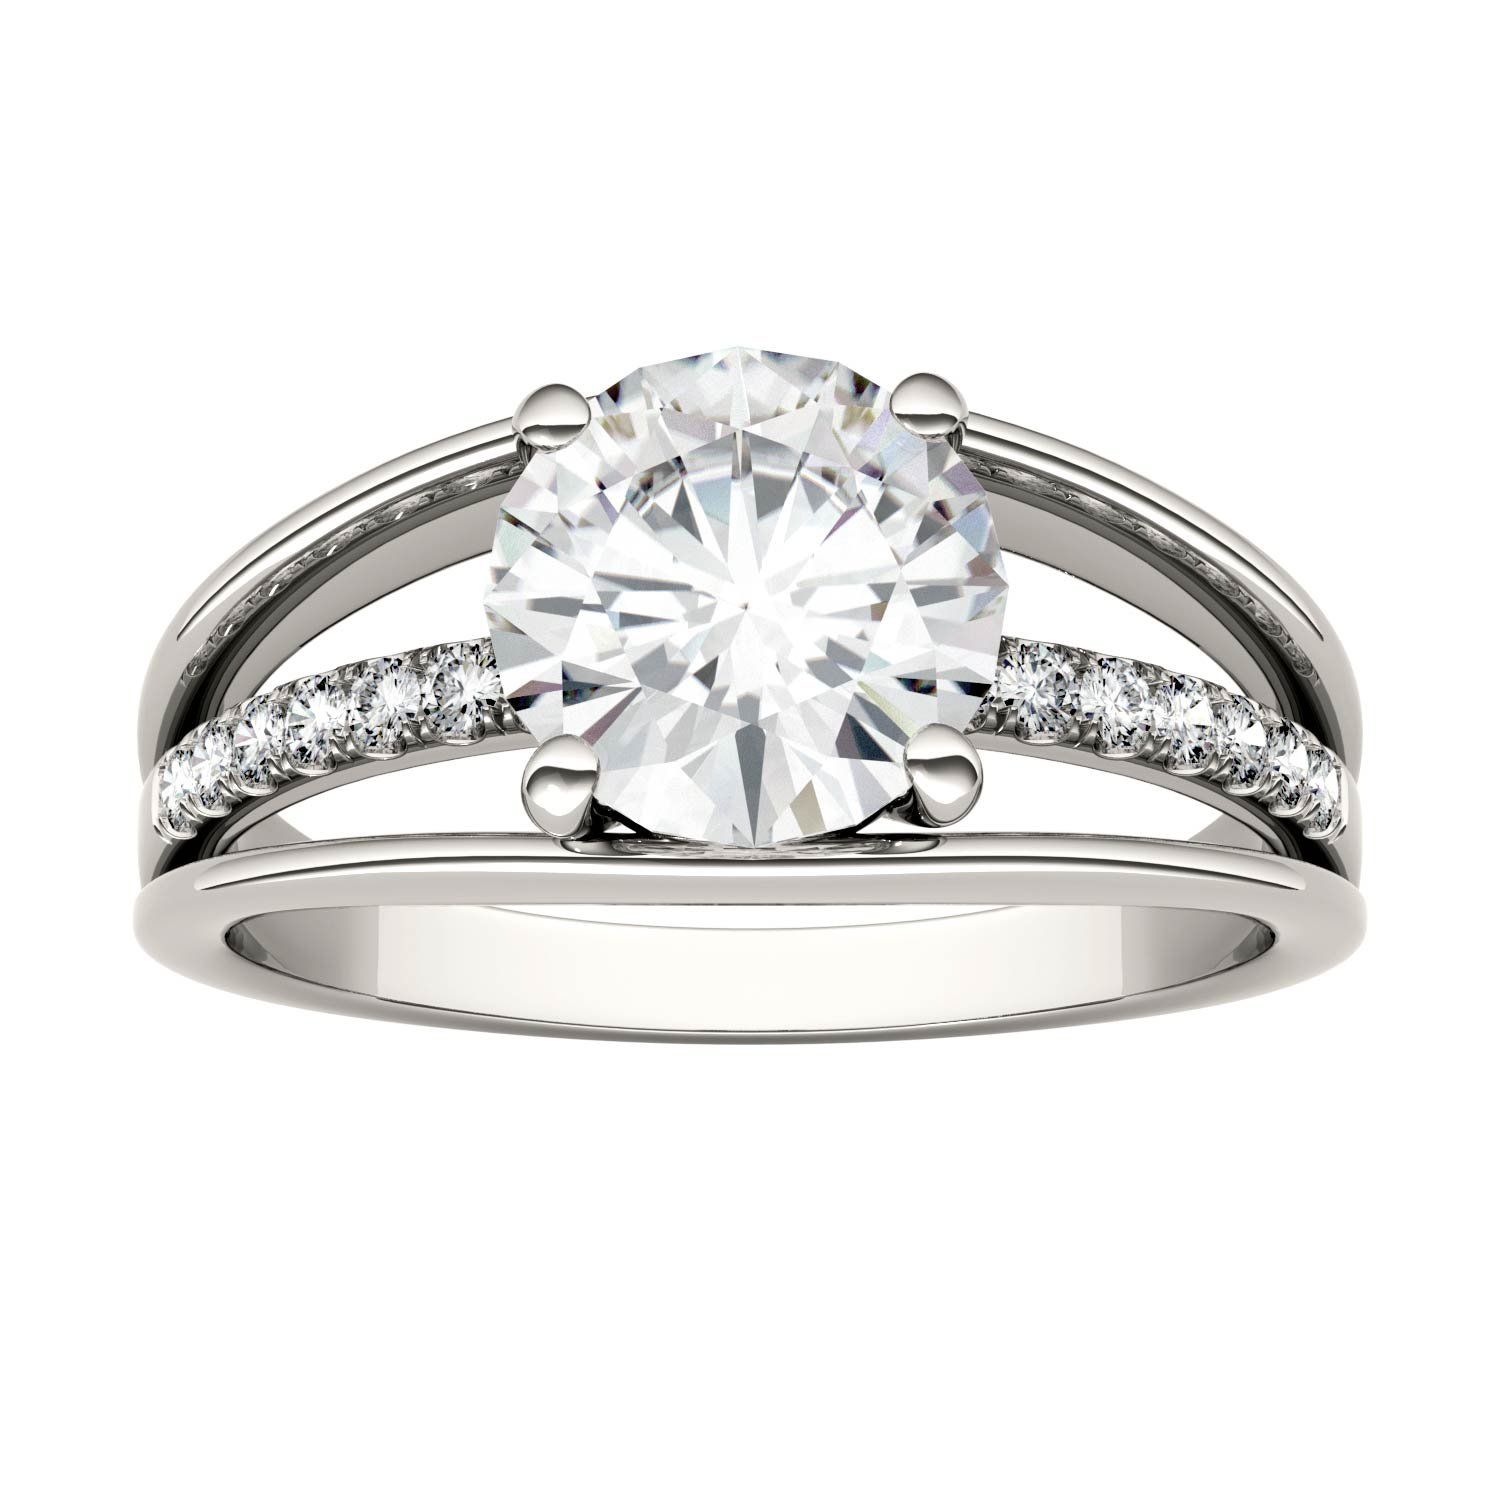 Forever Brilliant Round 8.0mm Moissanite Ring-size 6, 2.04cttw DEW By Charles & Colvard